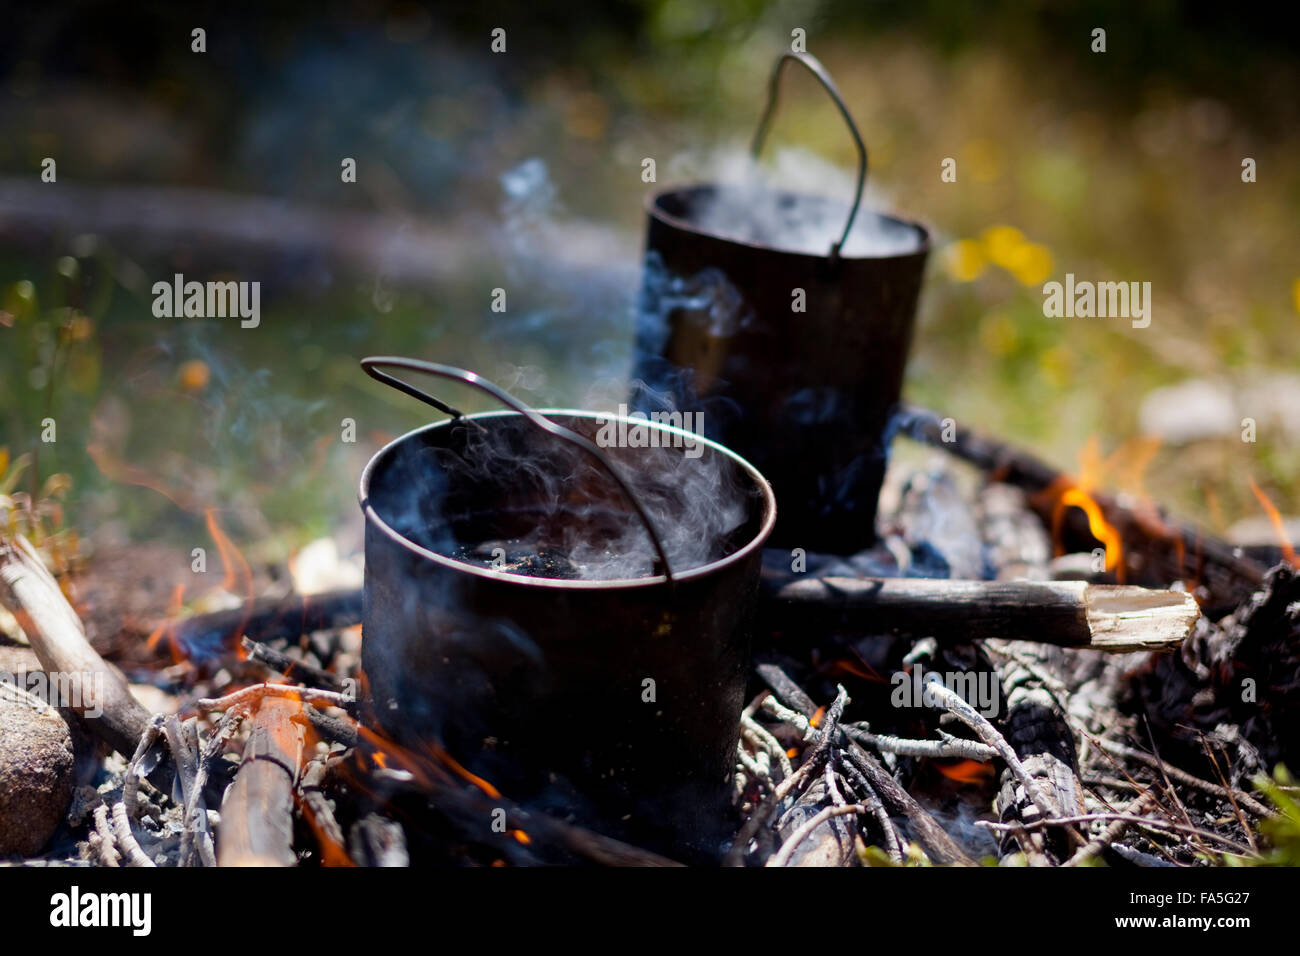 Australian billies on the boil in a campfire in the Victorian High Country. - Stock Image